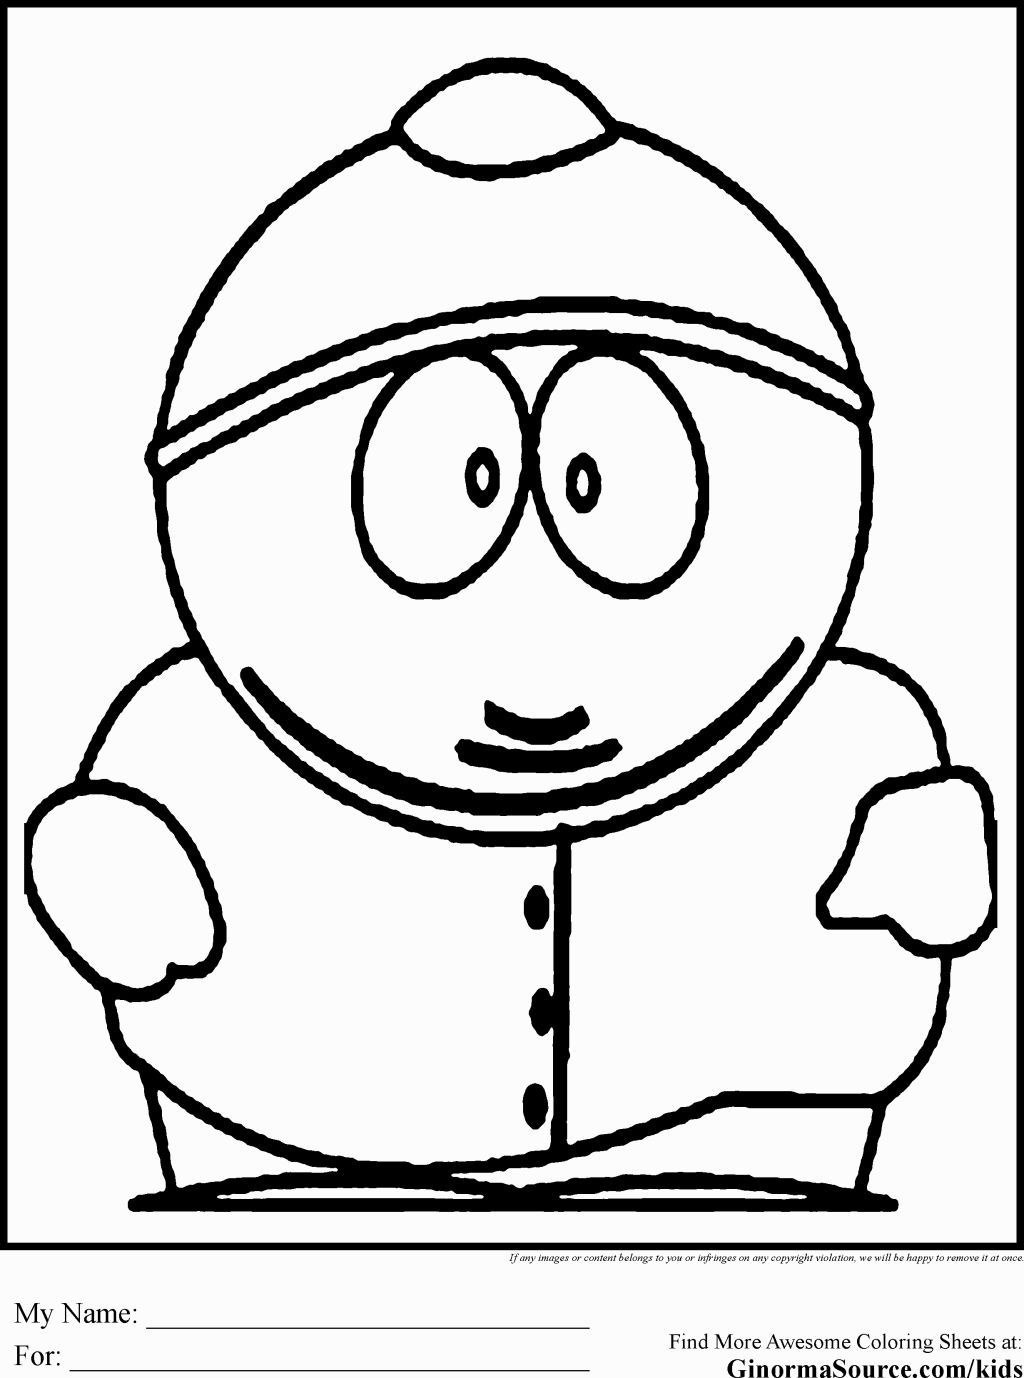 Printable South Park Coloring Pages - Coloring Home - Free Printable South Park Coloring Pages